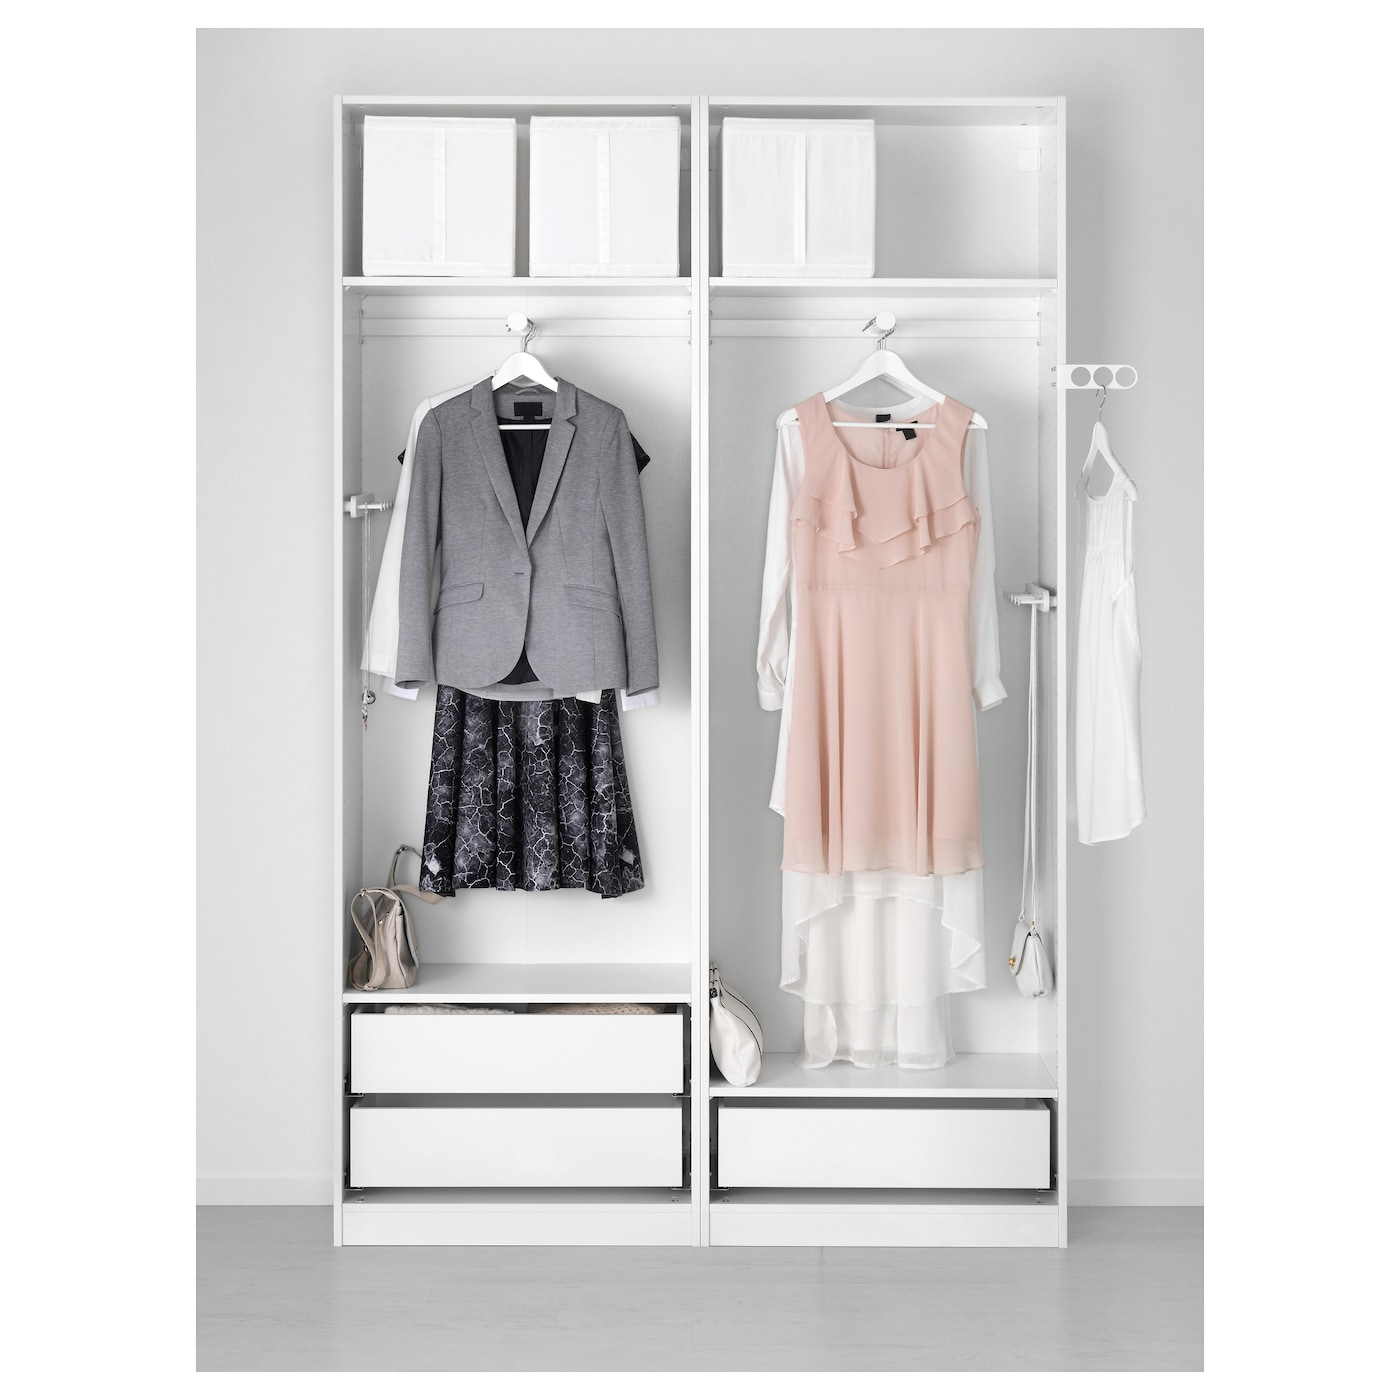 pax wardrobe white auli mirror glass 150x44x236 cm ikea. Black Bedroom Furniture Sets. Home Design Ideas